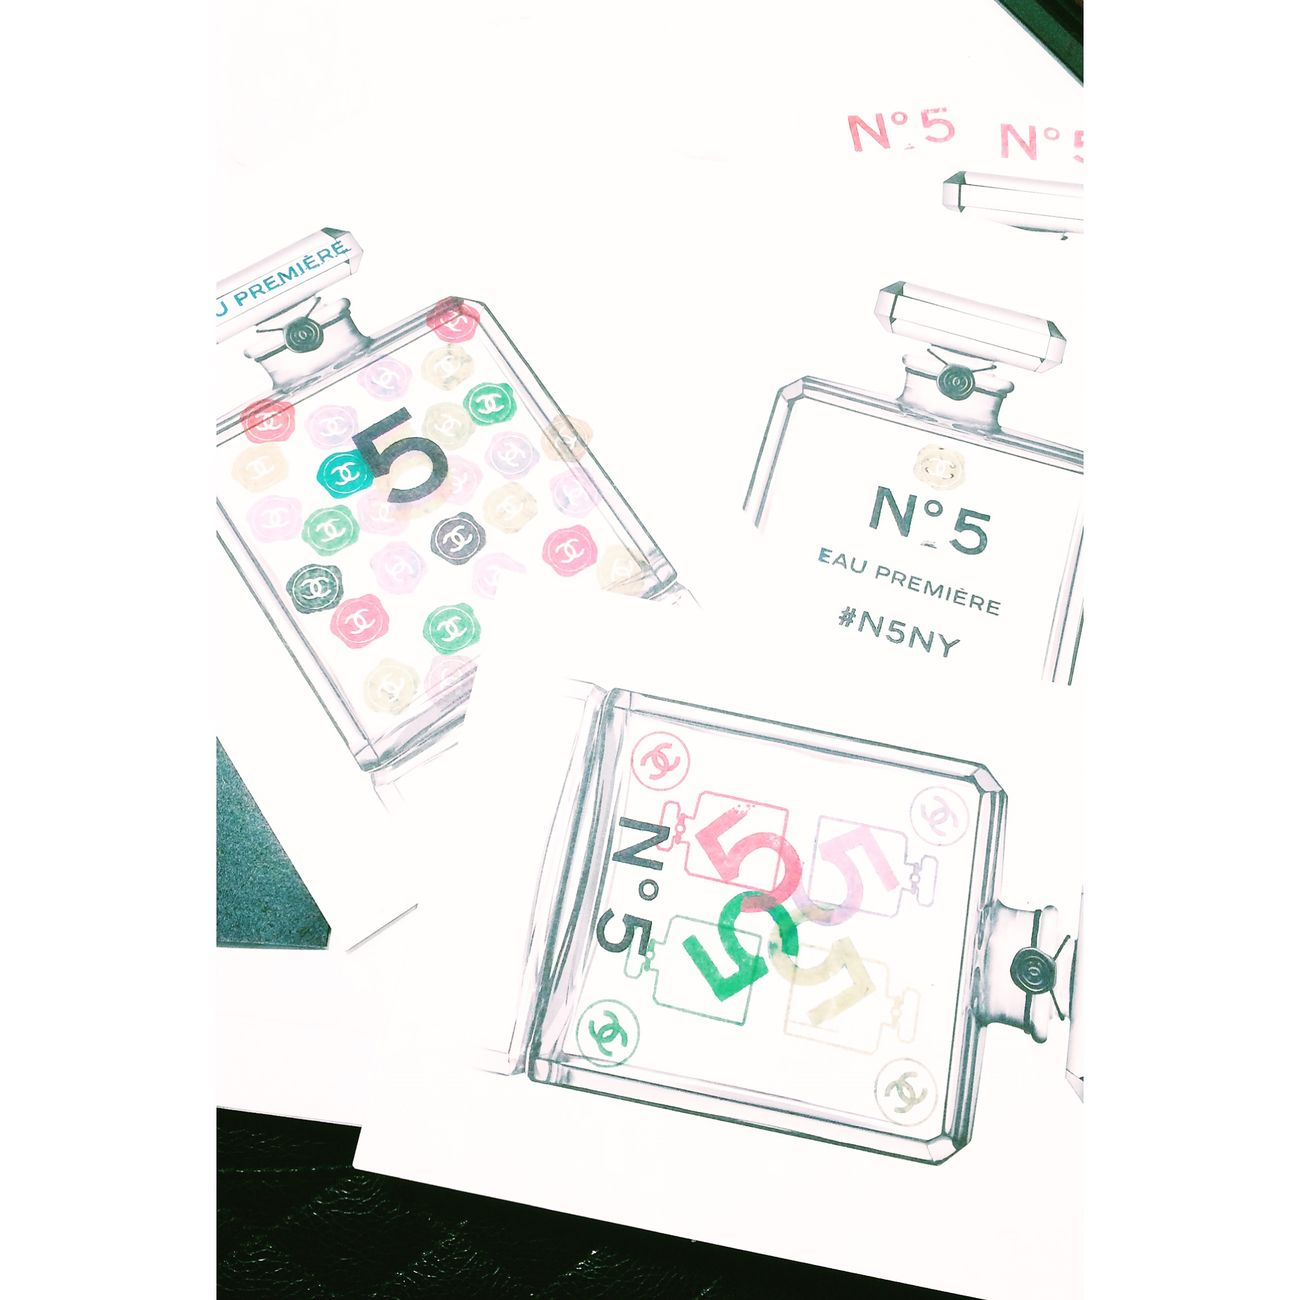 My presentation of No 5 Chanel No.5 Perfume Postcard